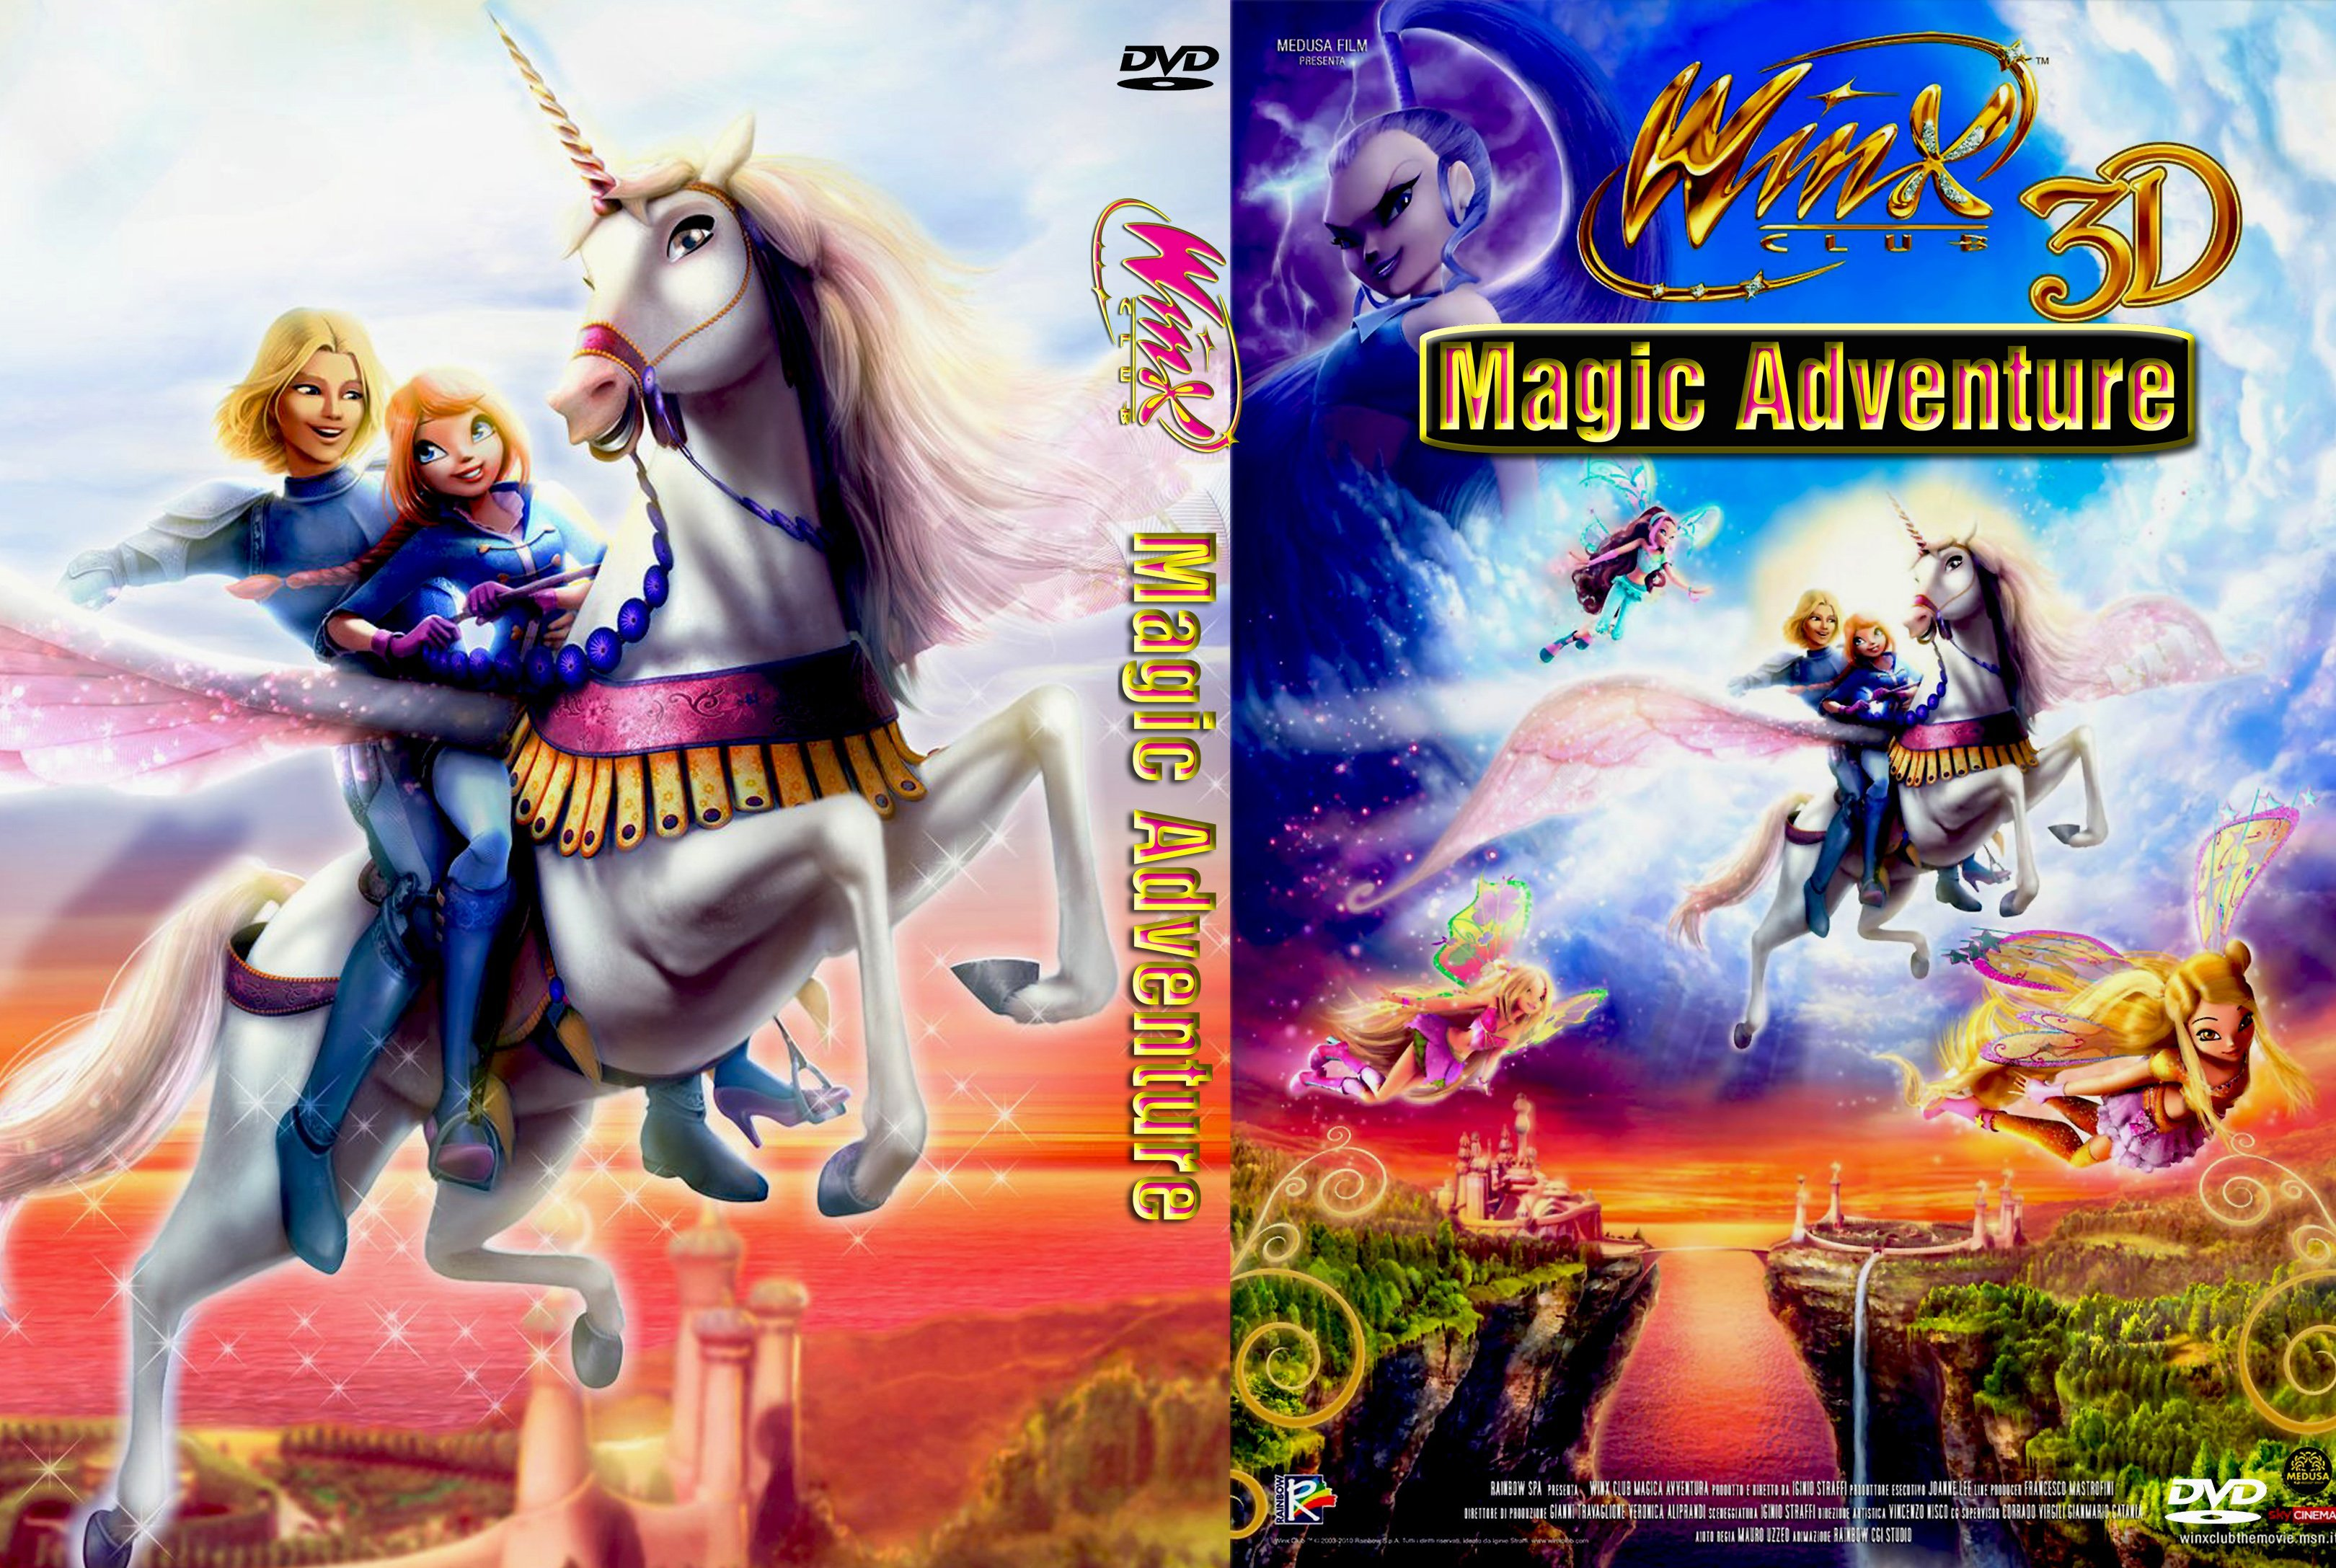 Winx Club: Magic Adventure (2010) | Dvd Covers and Labels